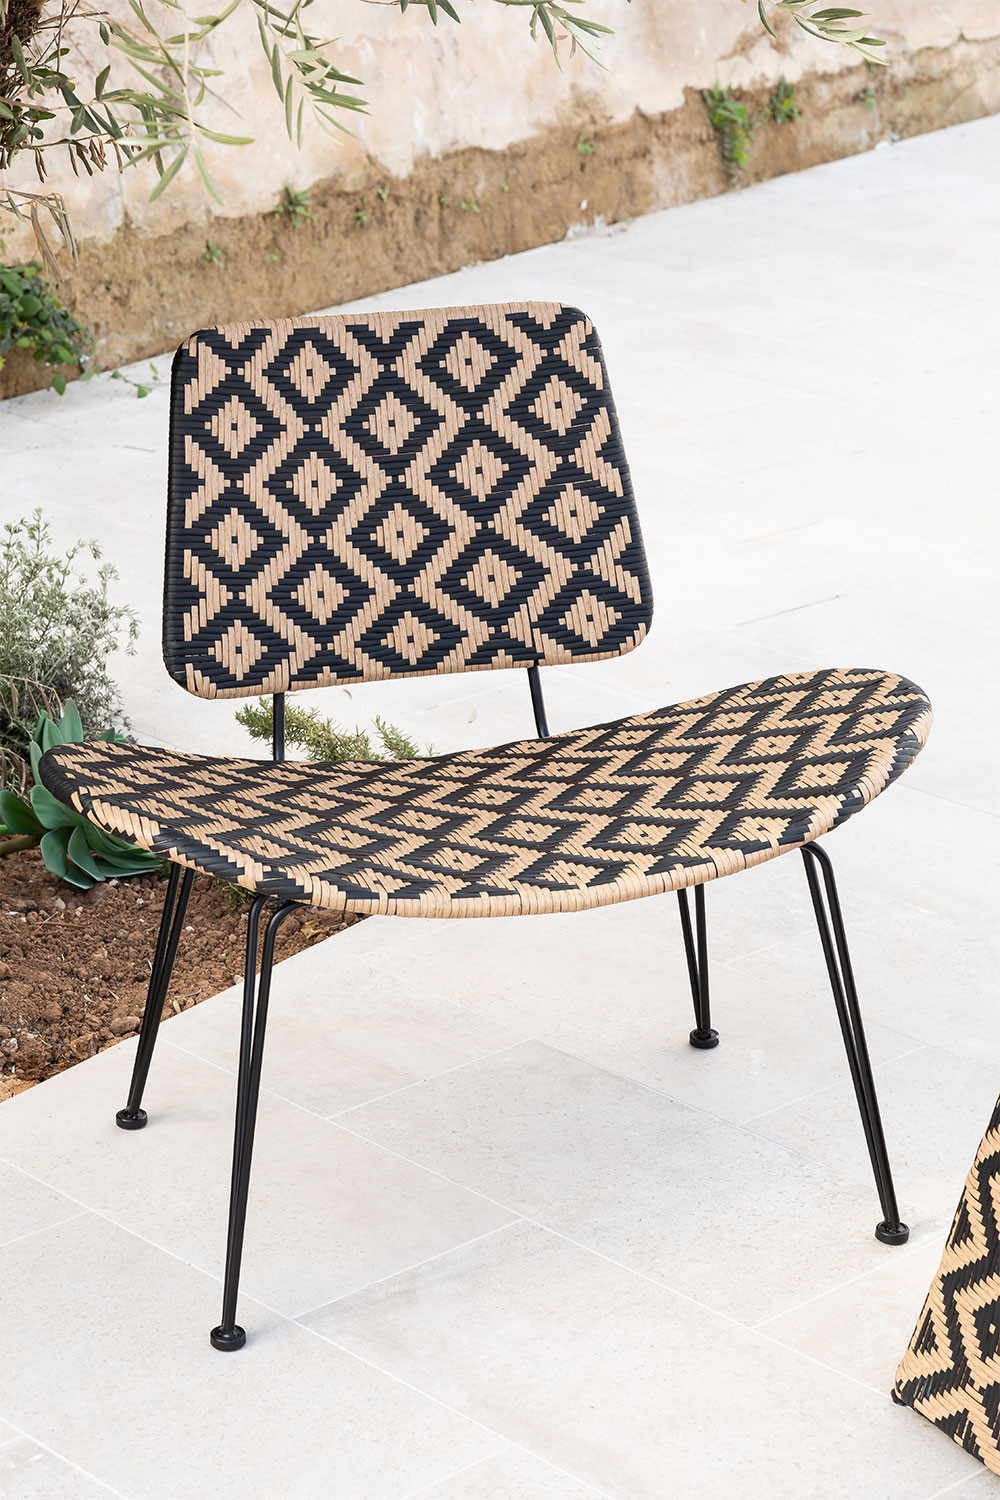 Corvik Synthetic Wicker Garden Lounge Chair, gallery image 1